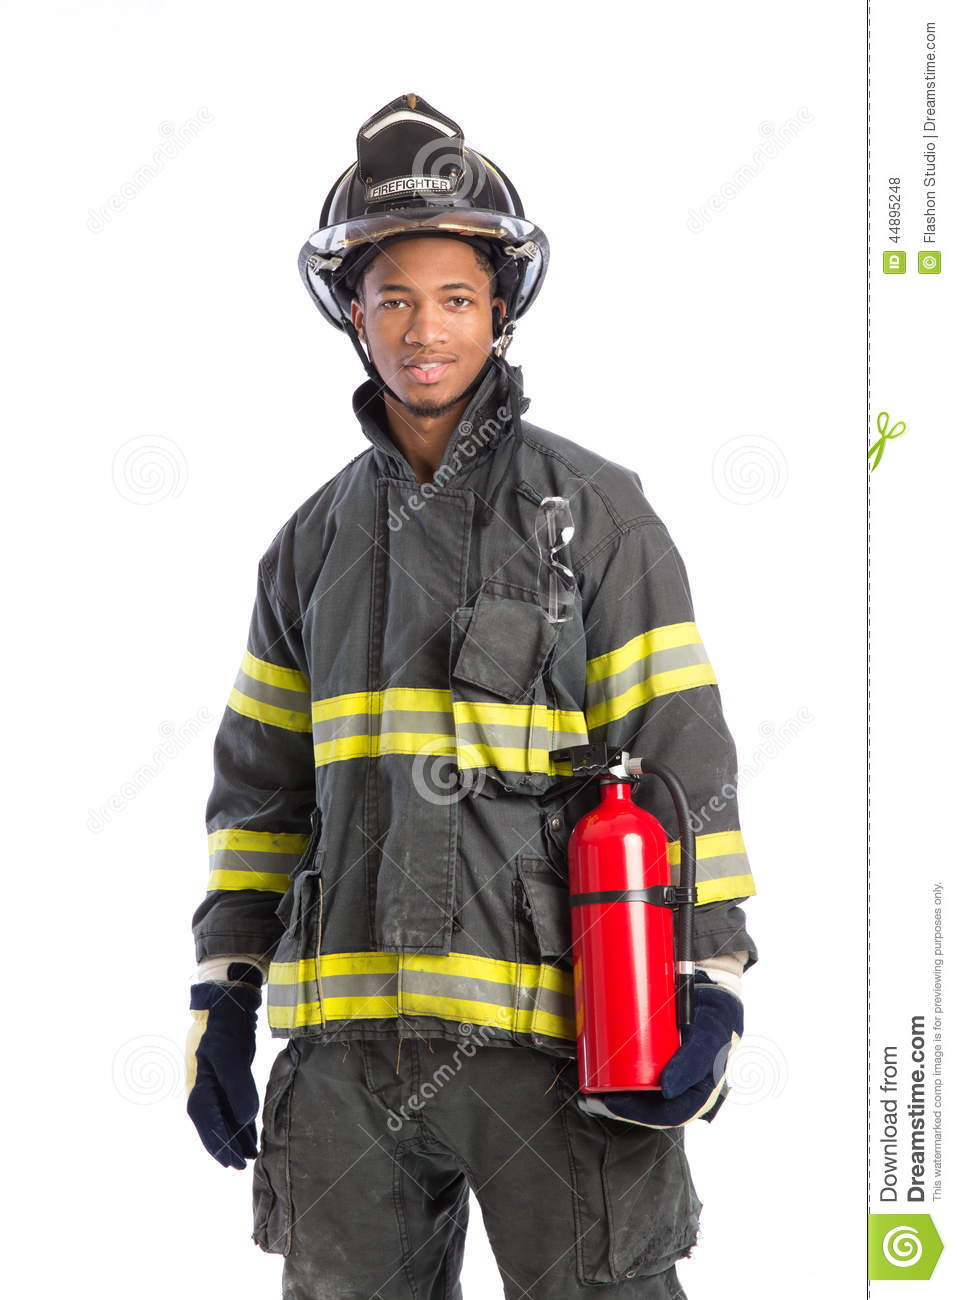 Firefighter In Uniform Holding Fire Extinguisher Stock Photo - Image ...